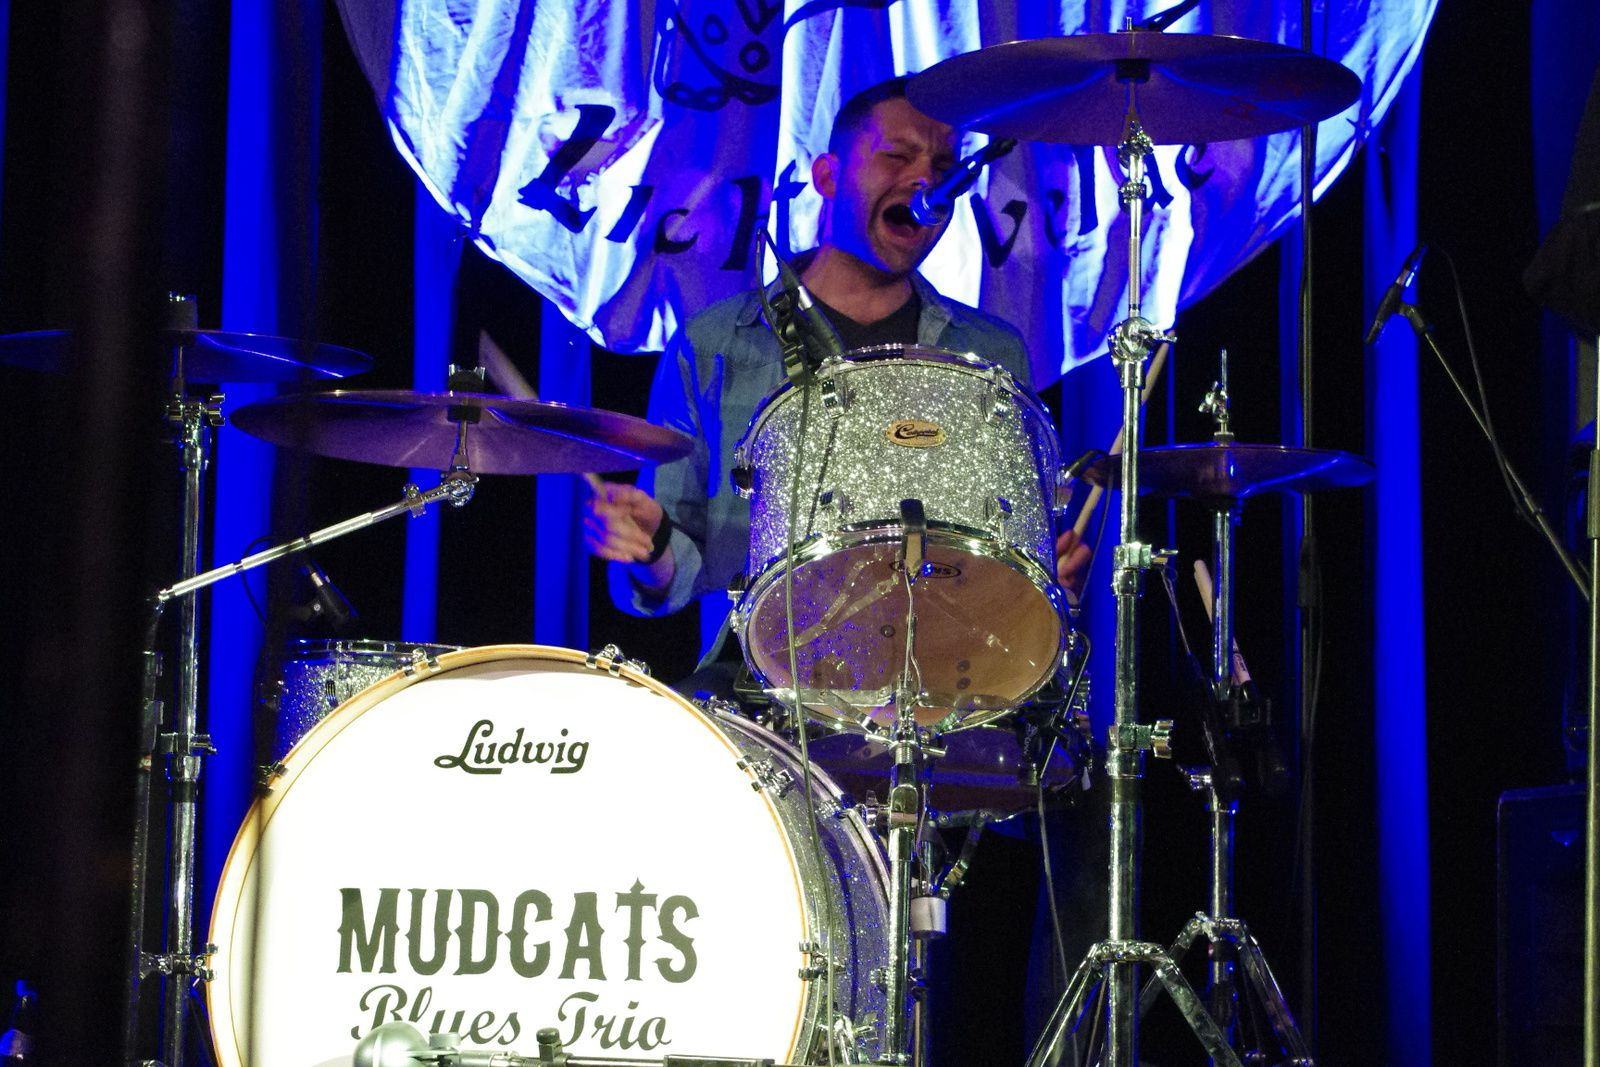 Mudcats Blues trio feat. Greg Copeland - 19 avril 2014 - Delirium Blues festival, Lichtervelde (B)